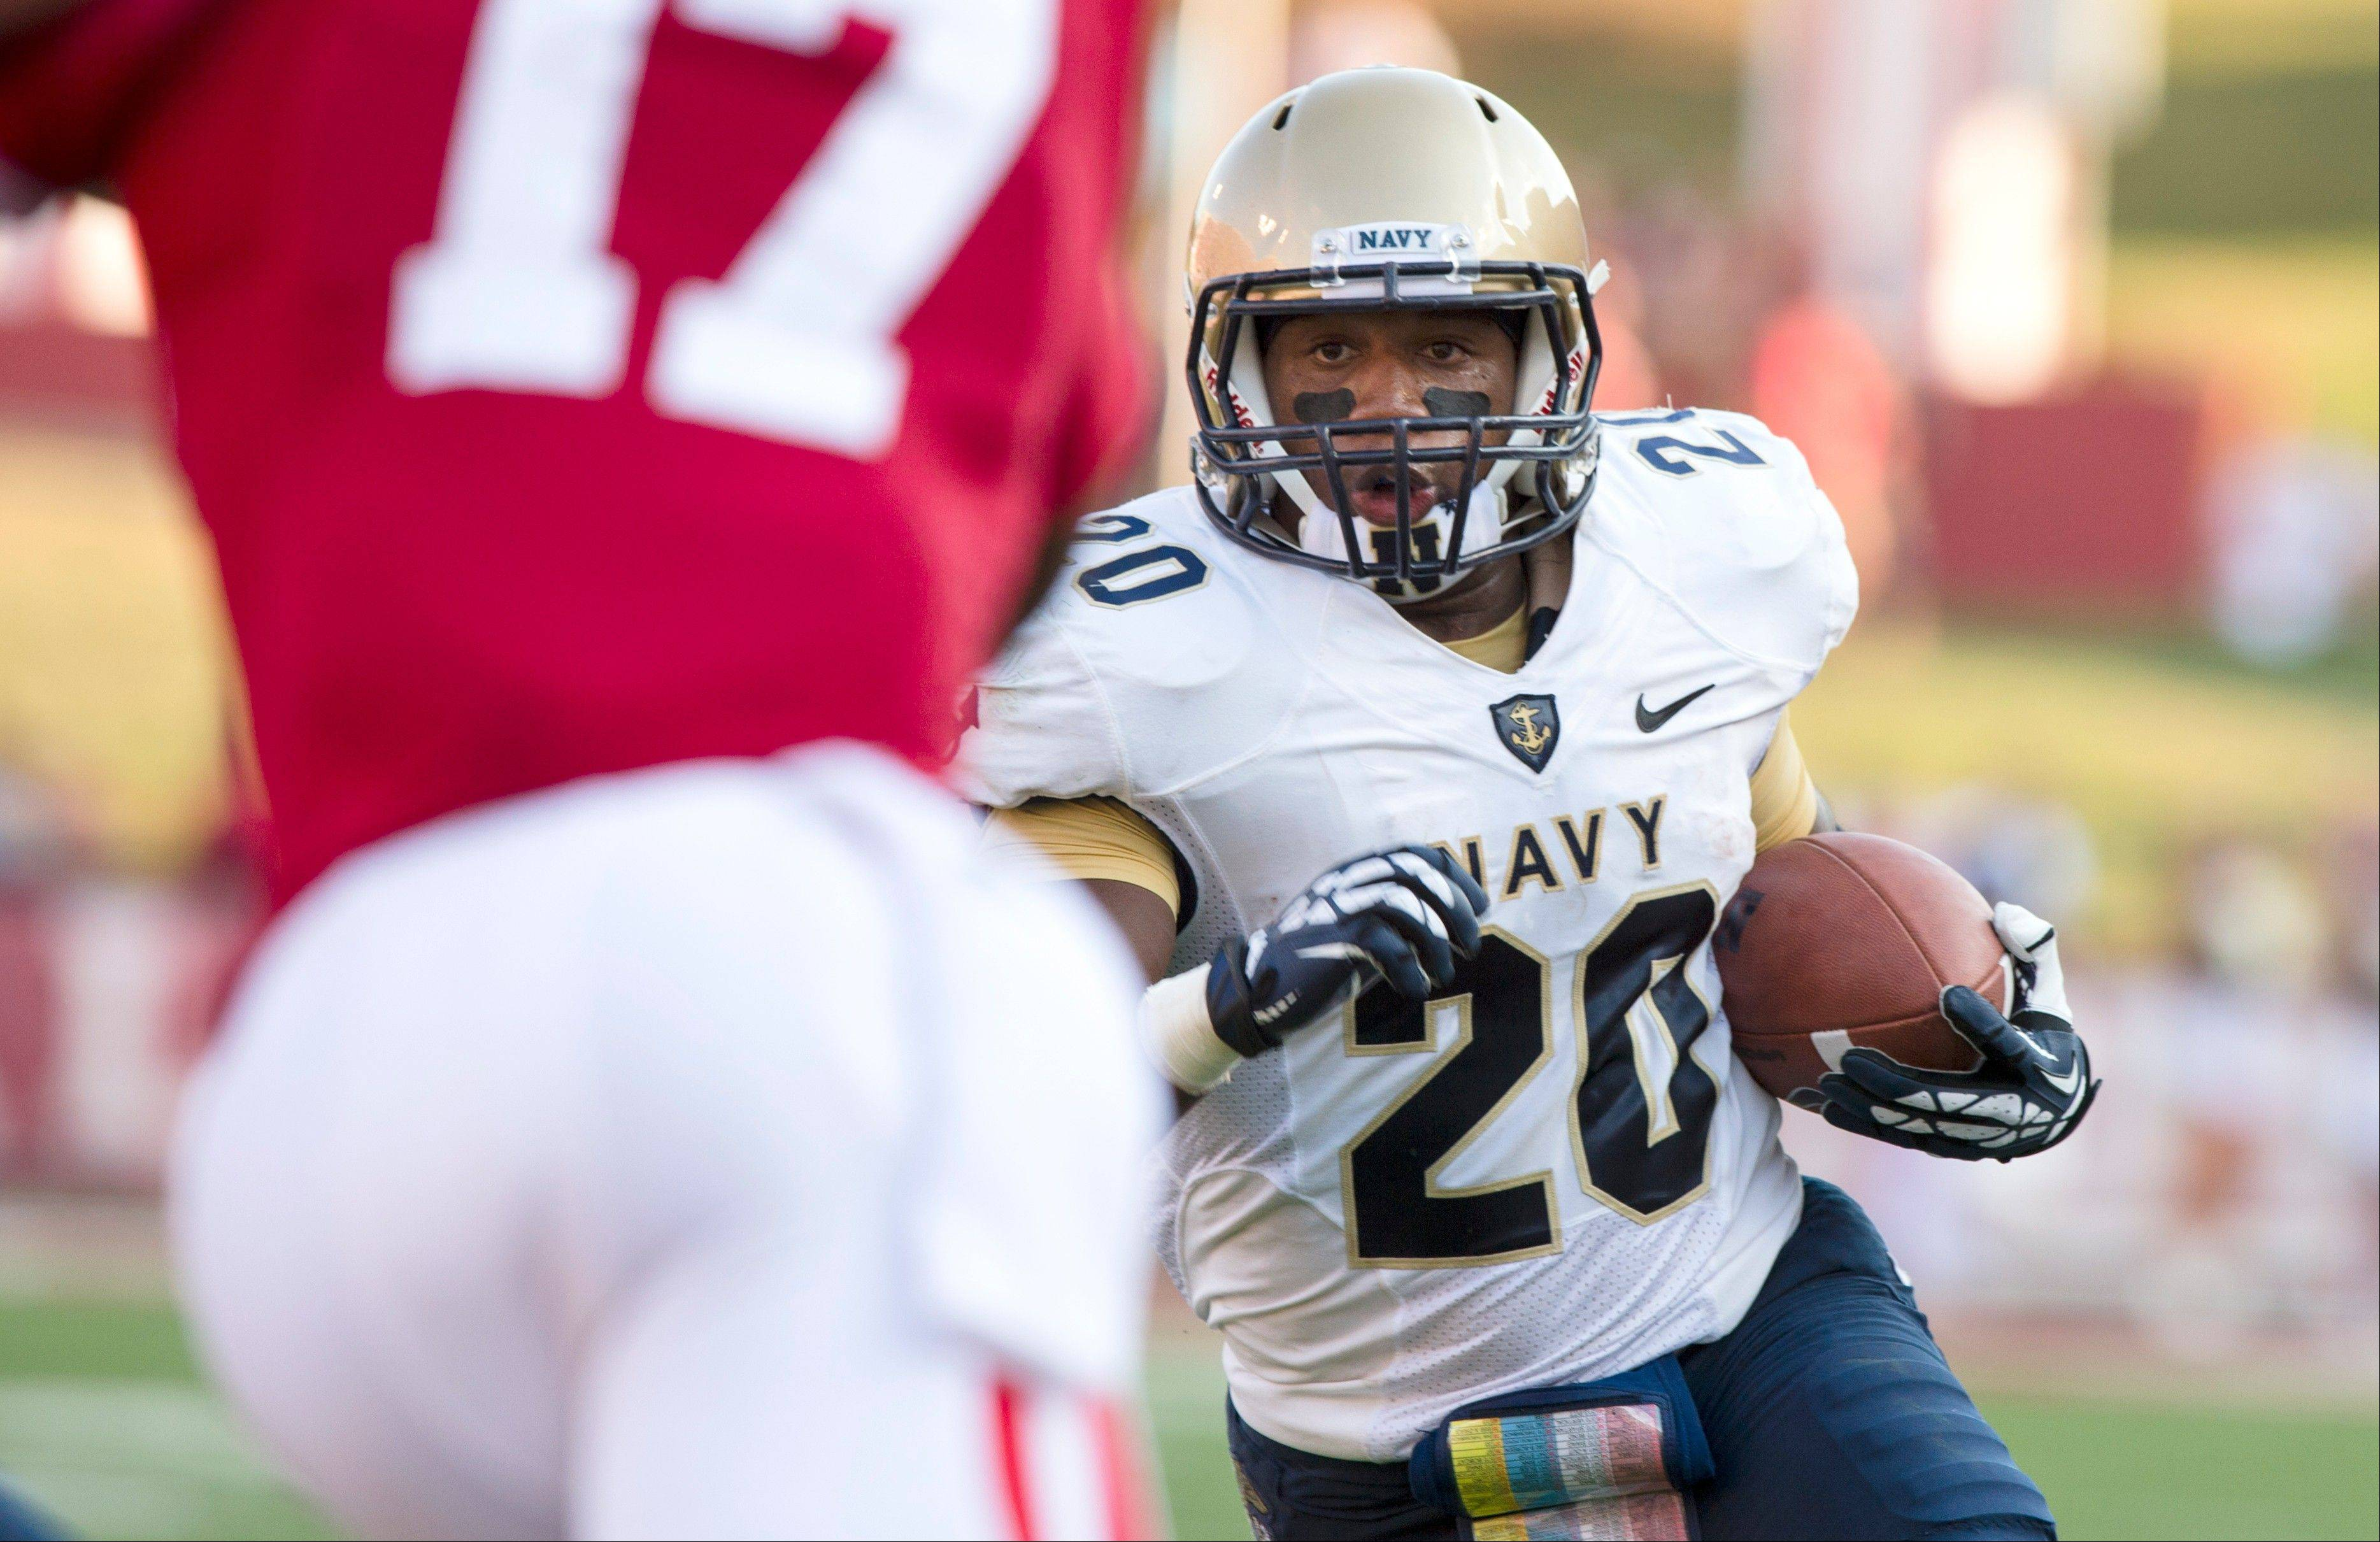 Navy's Darius Staten runs into the Indiana secondary during the first half Saturday in Bloomington, Ind.